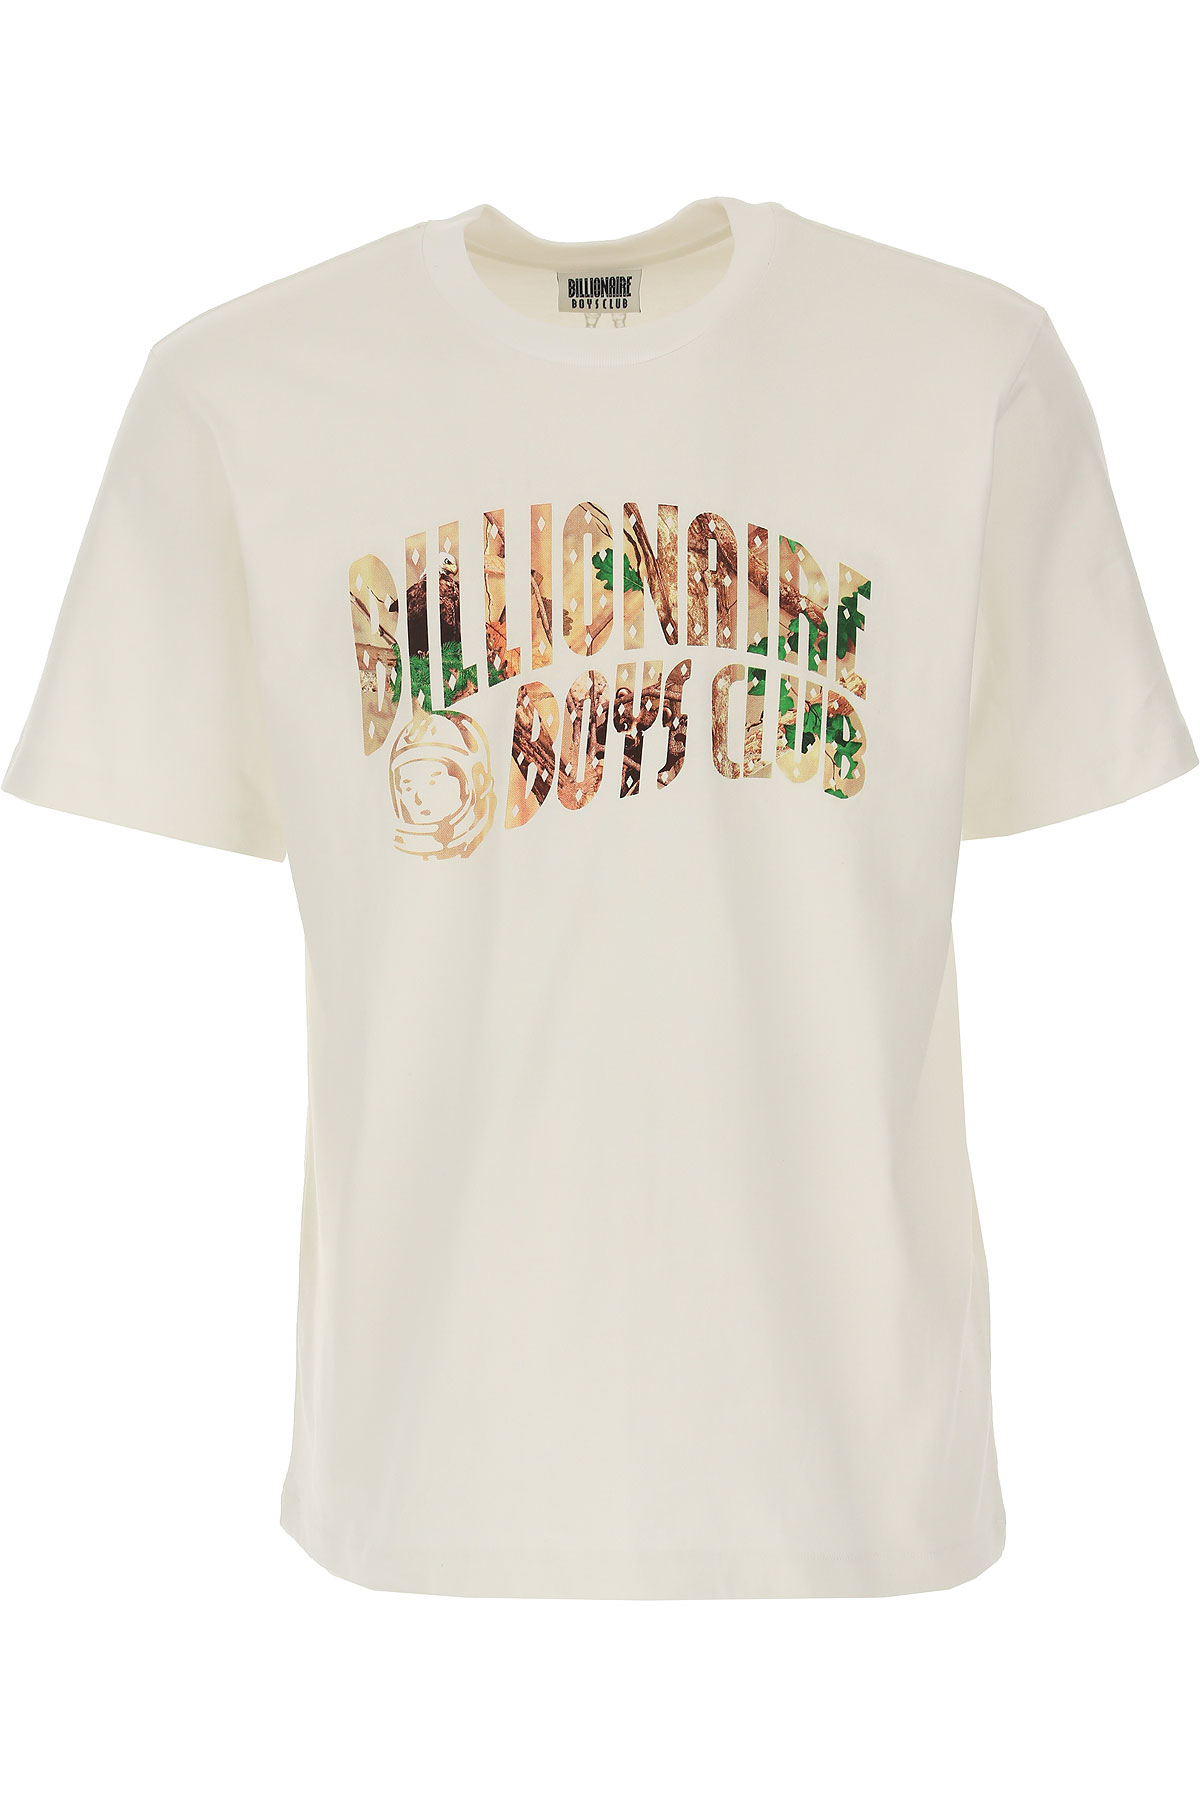 BILLIONAIRE BOYS CLUB T-Shirt for Men On Sale, White, Cotton, 2019, M XL